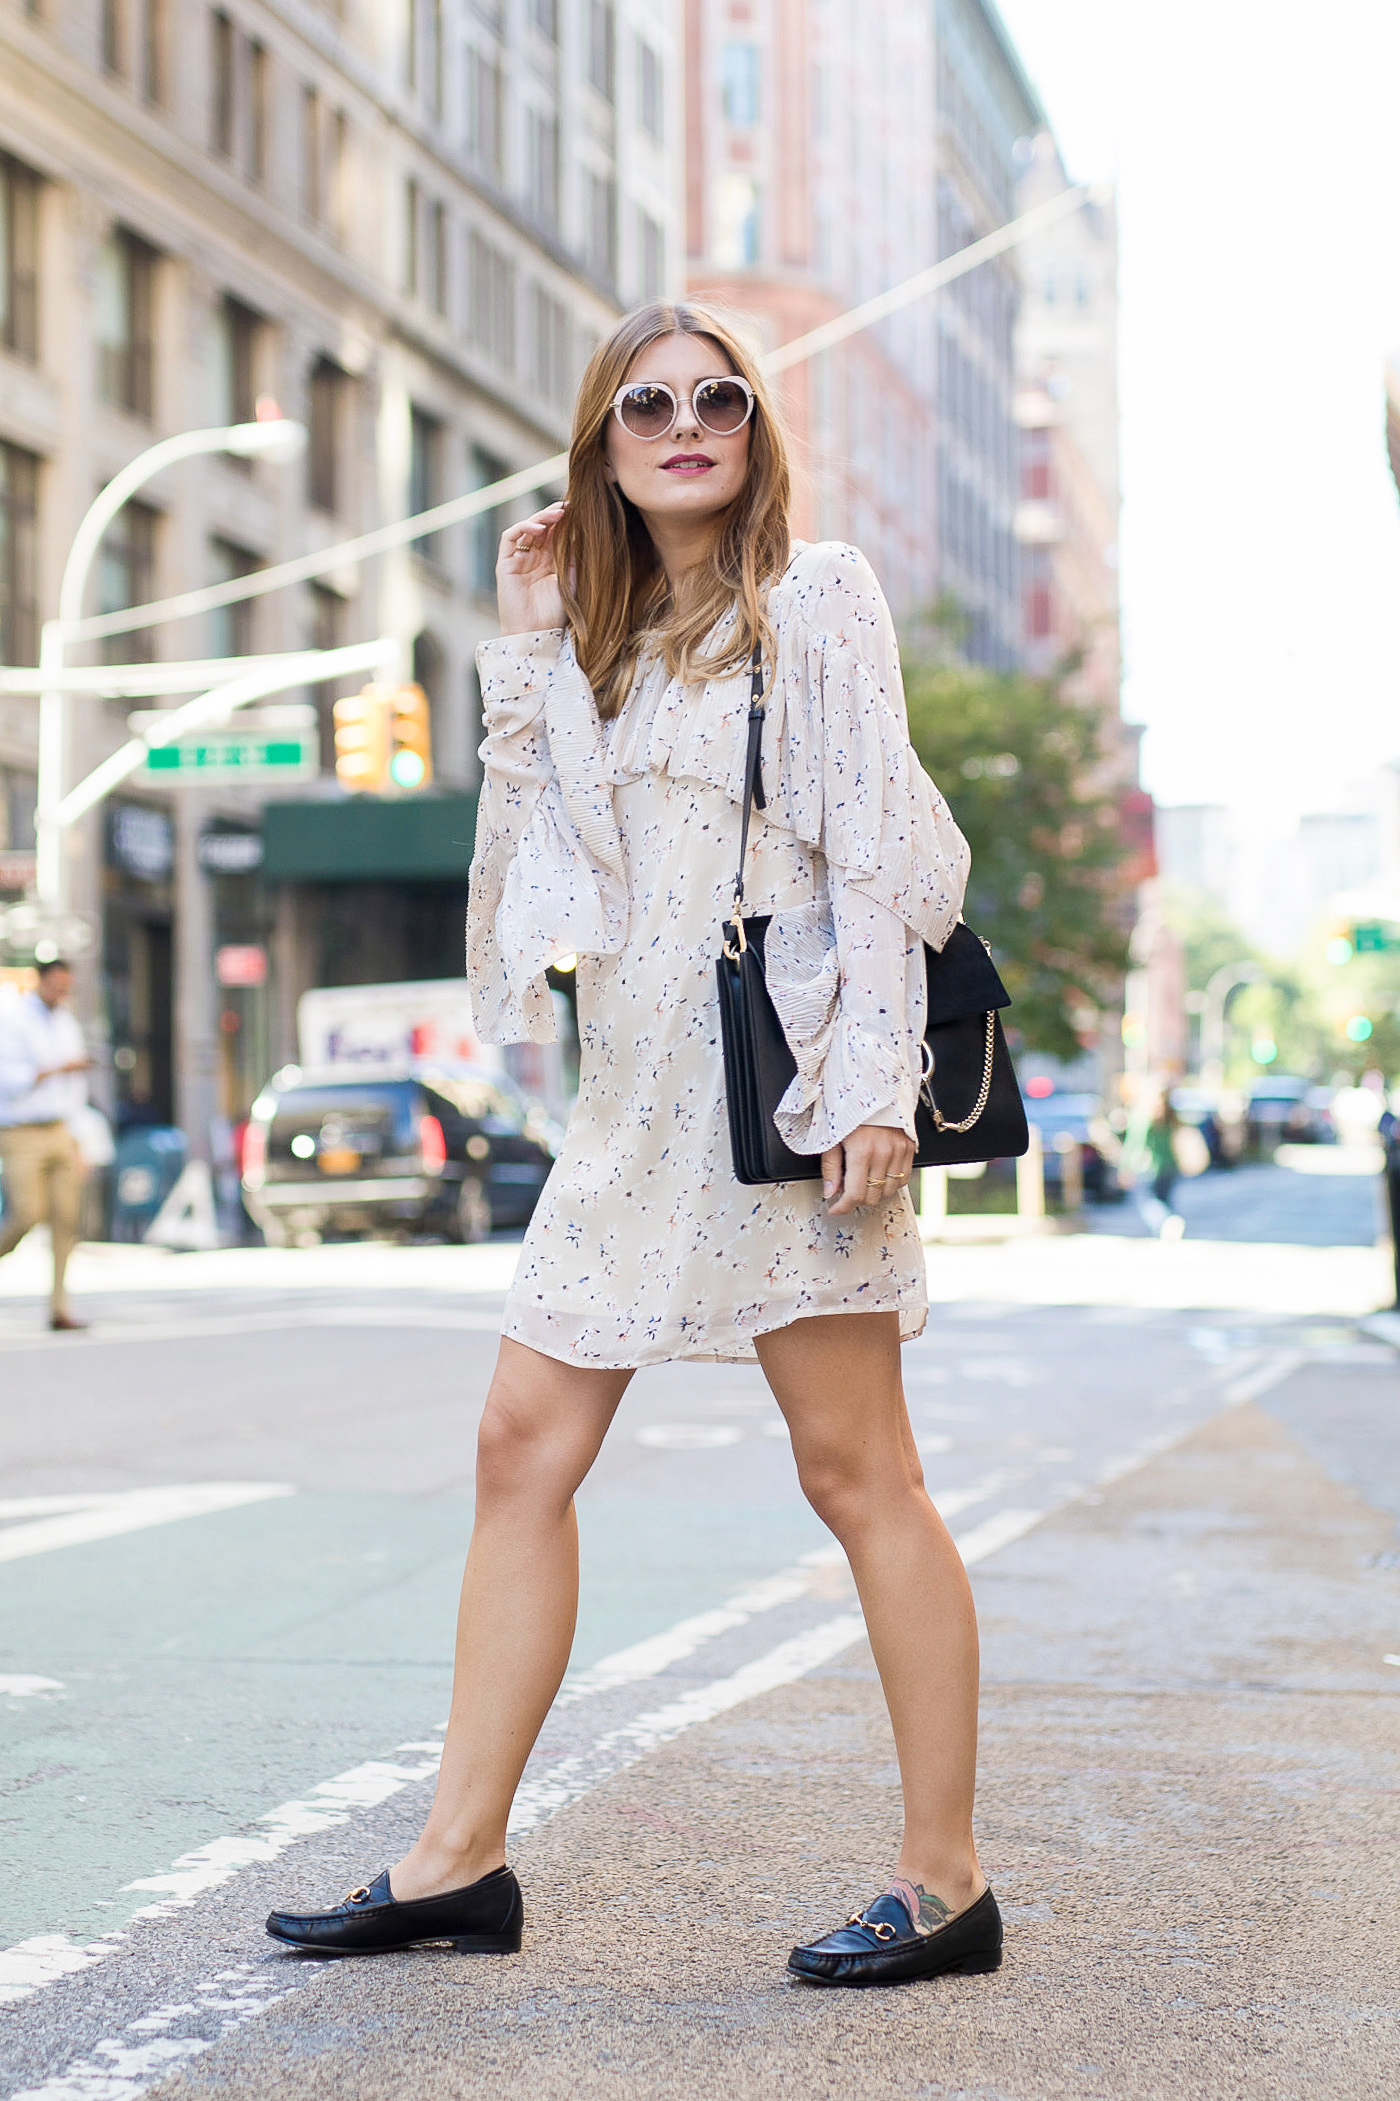 New_York_Broadway_Outfit_Ruffle_Dress_Gucci_Loafers_1